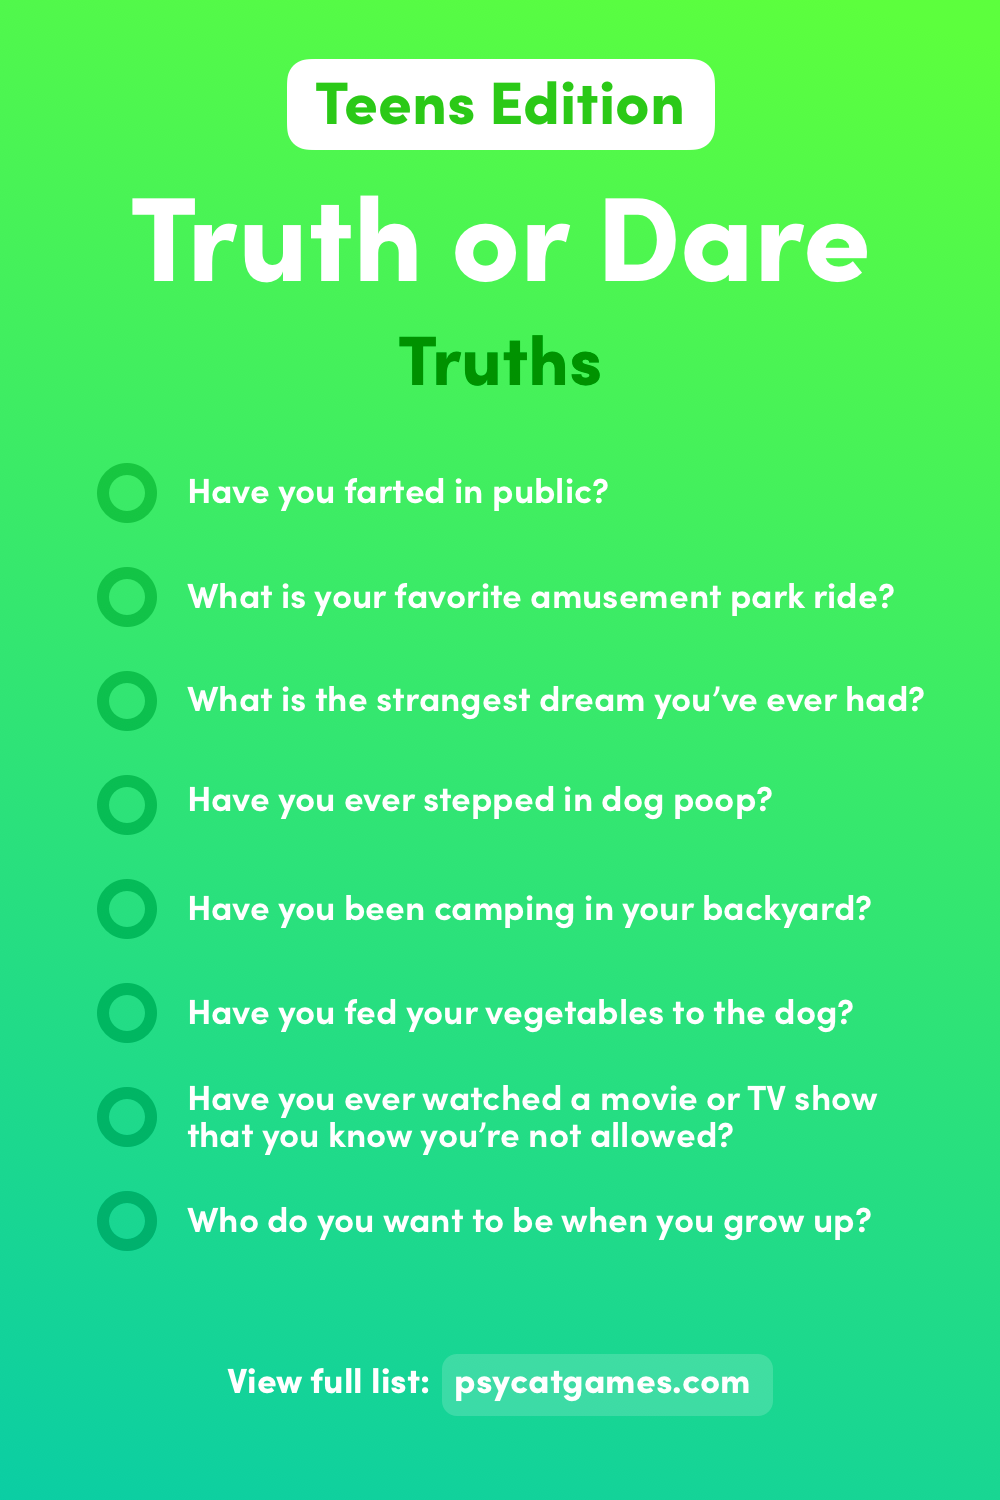 Truth or Dare Questions for Teens